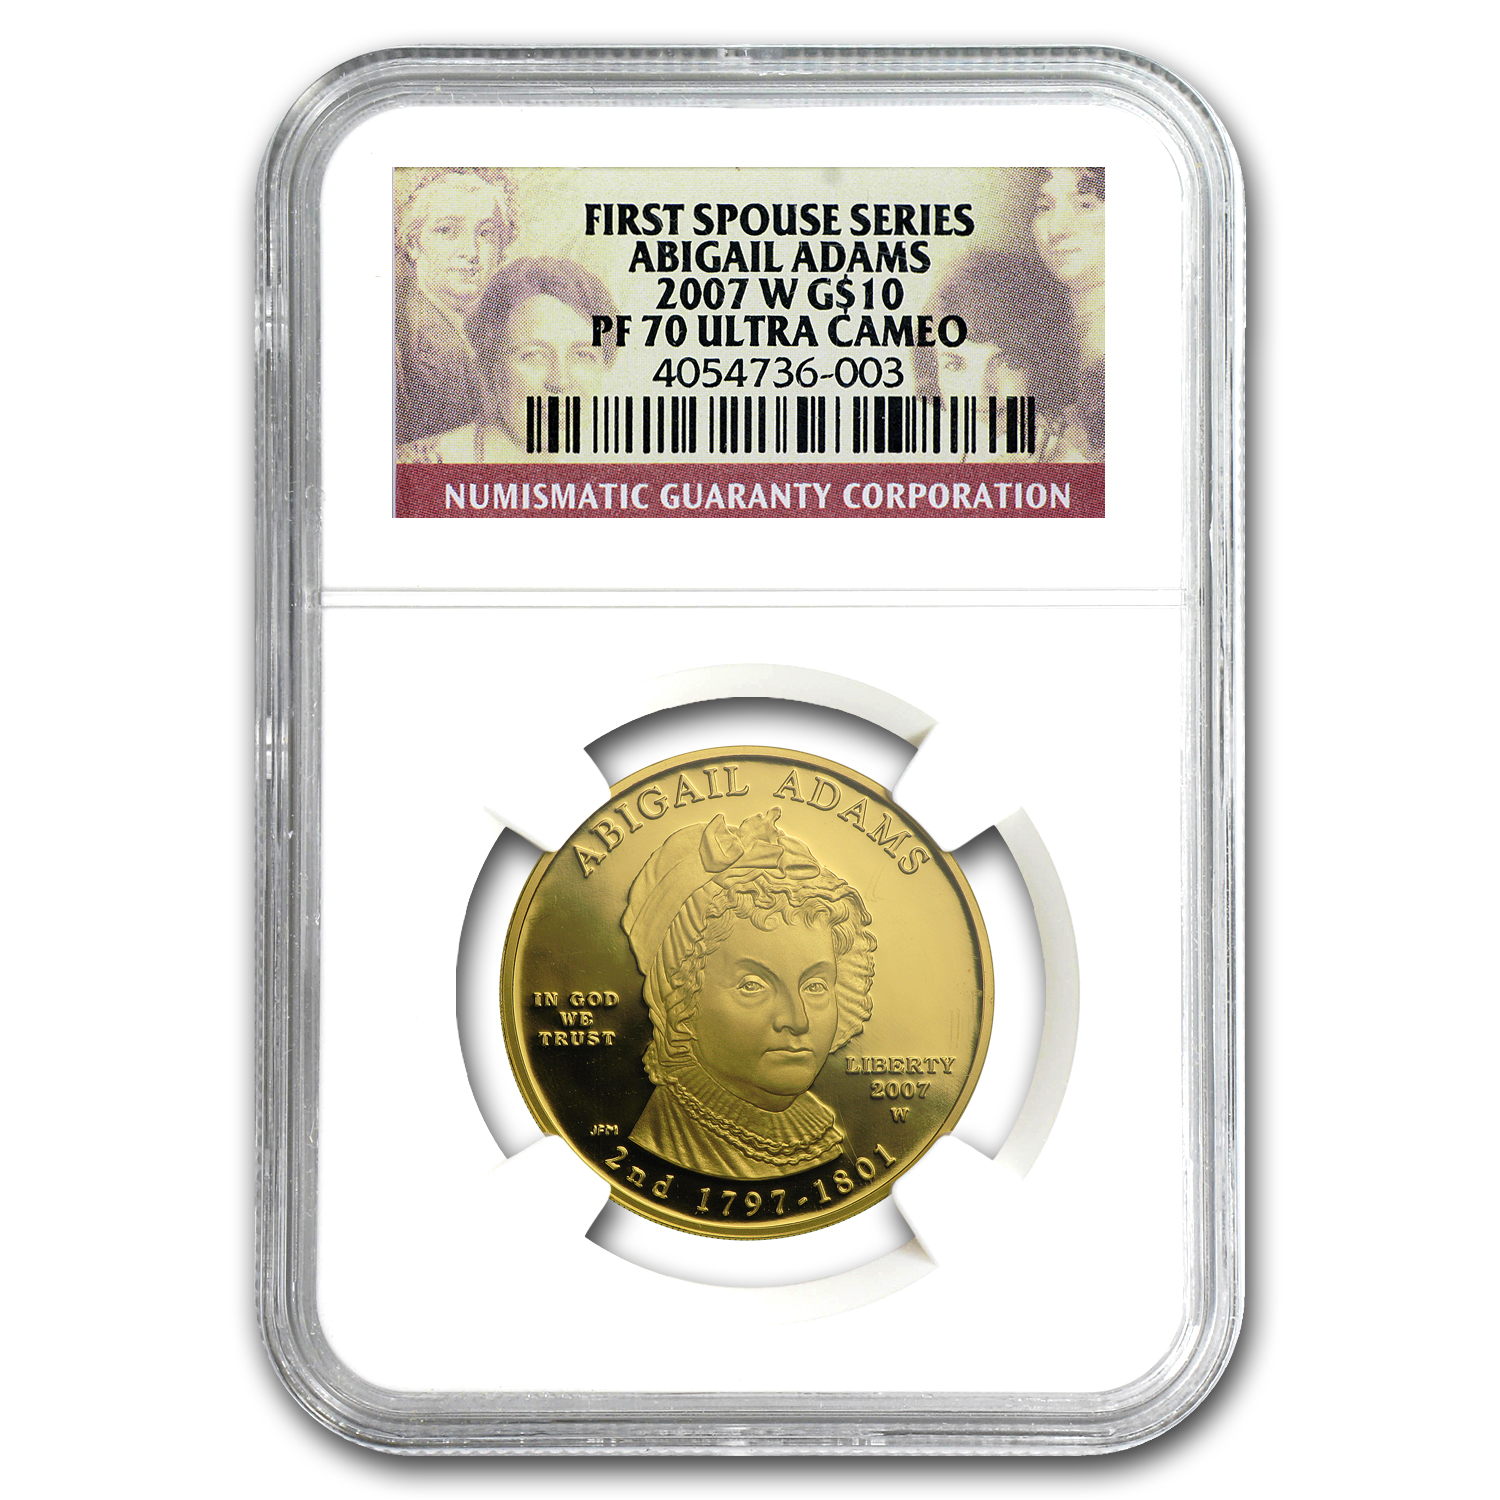 2007-W 1/2 oz Proof Gold Abigail Adams PF-70 NGC UCAM